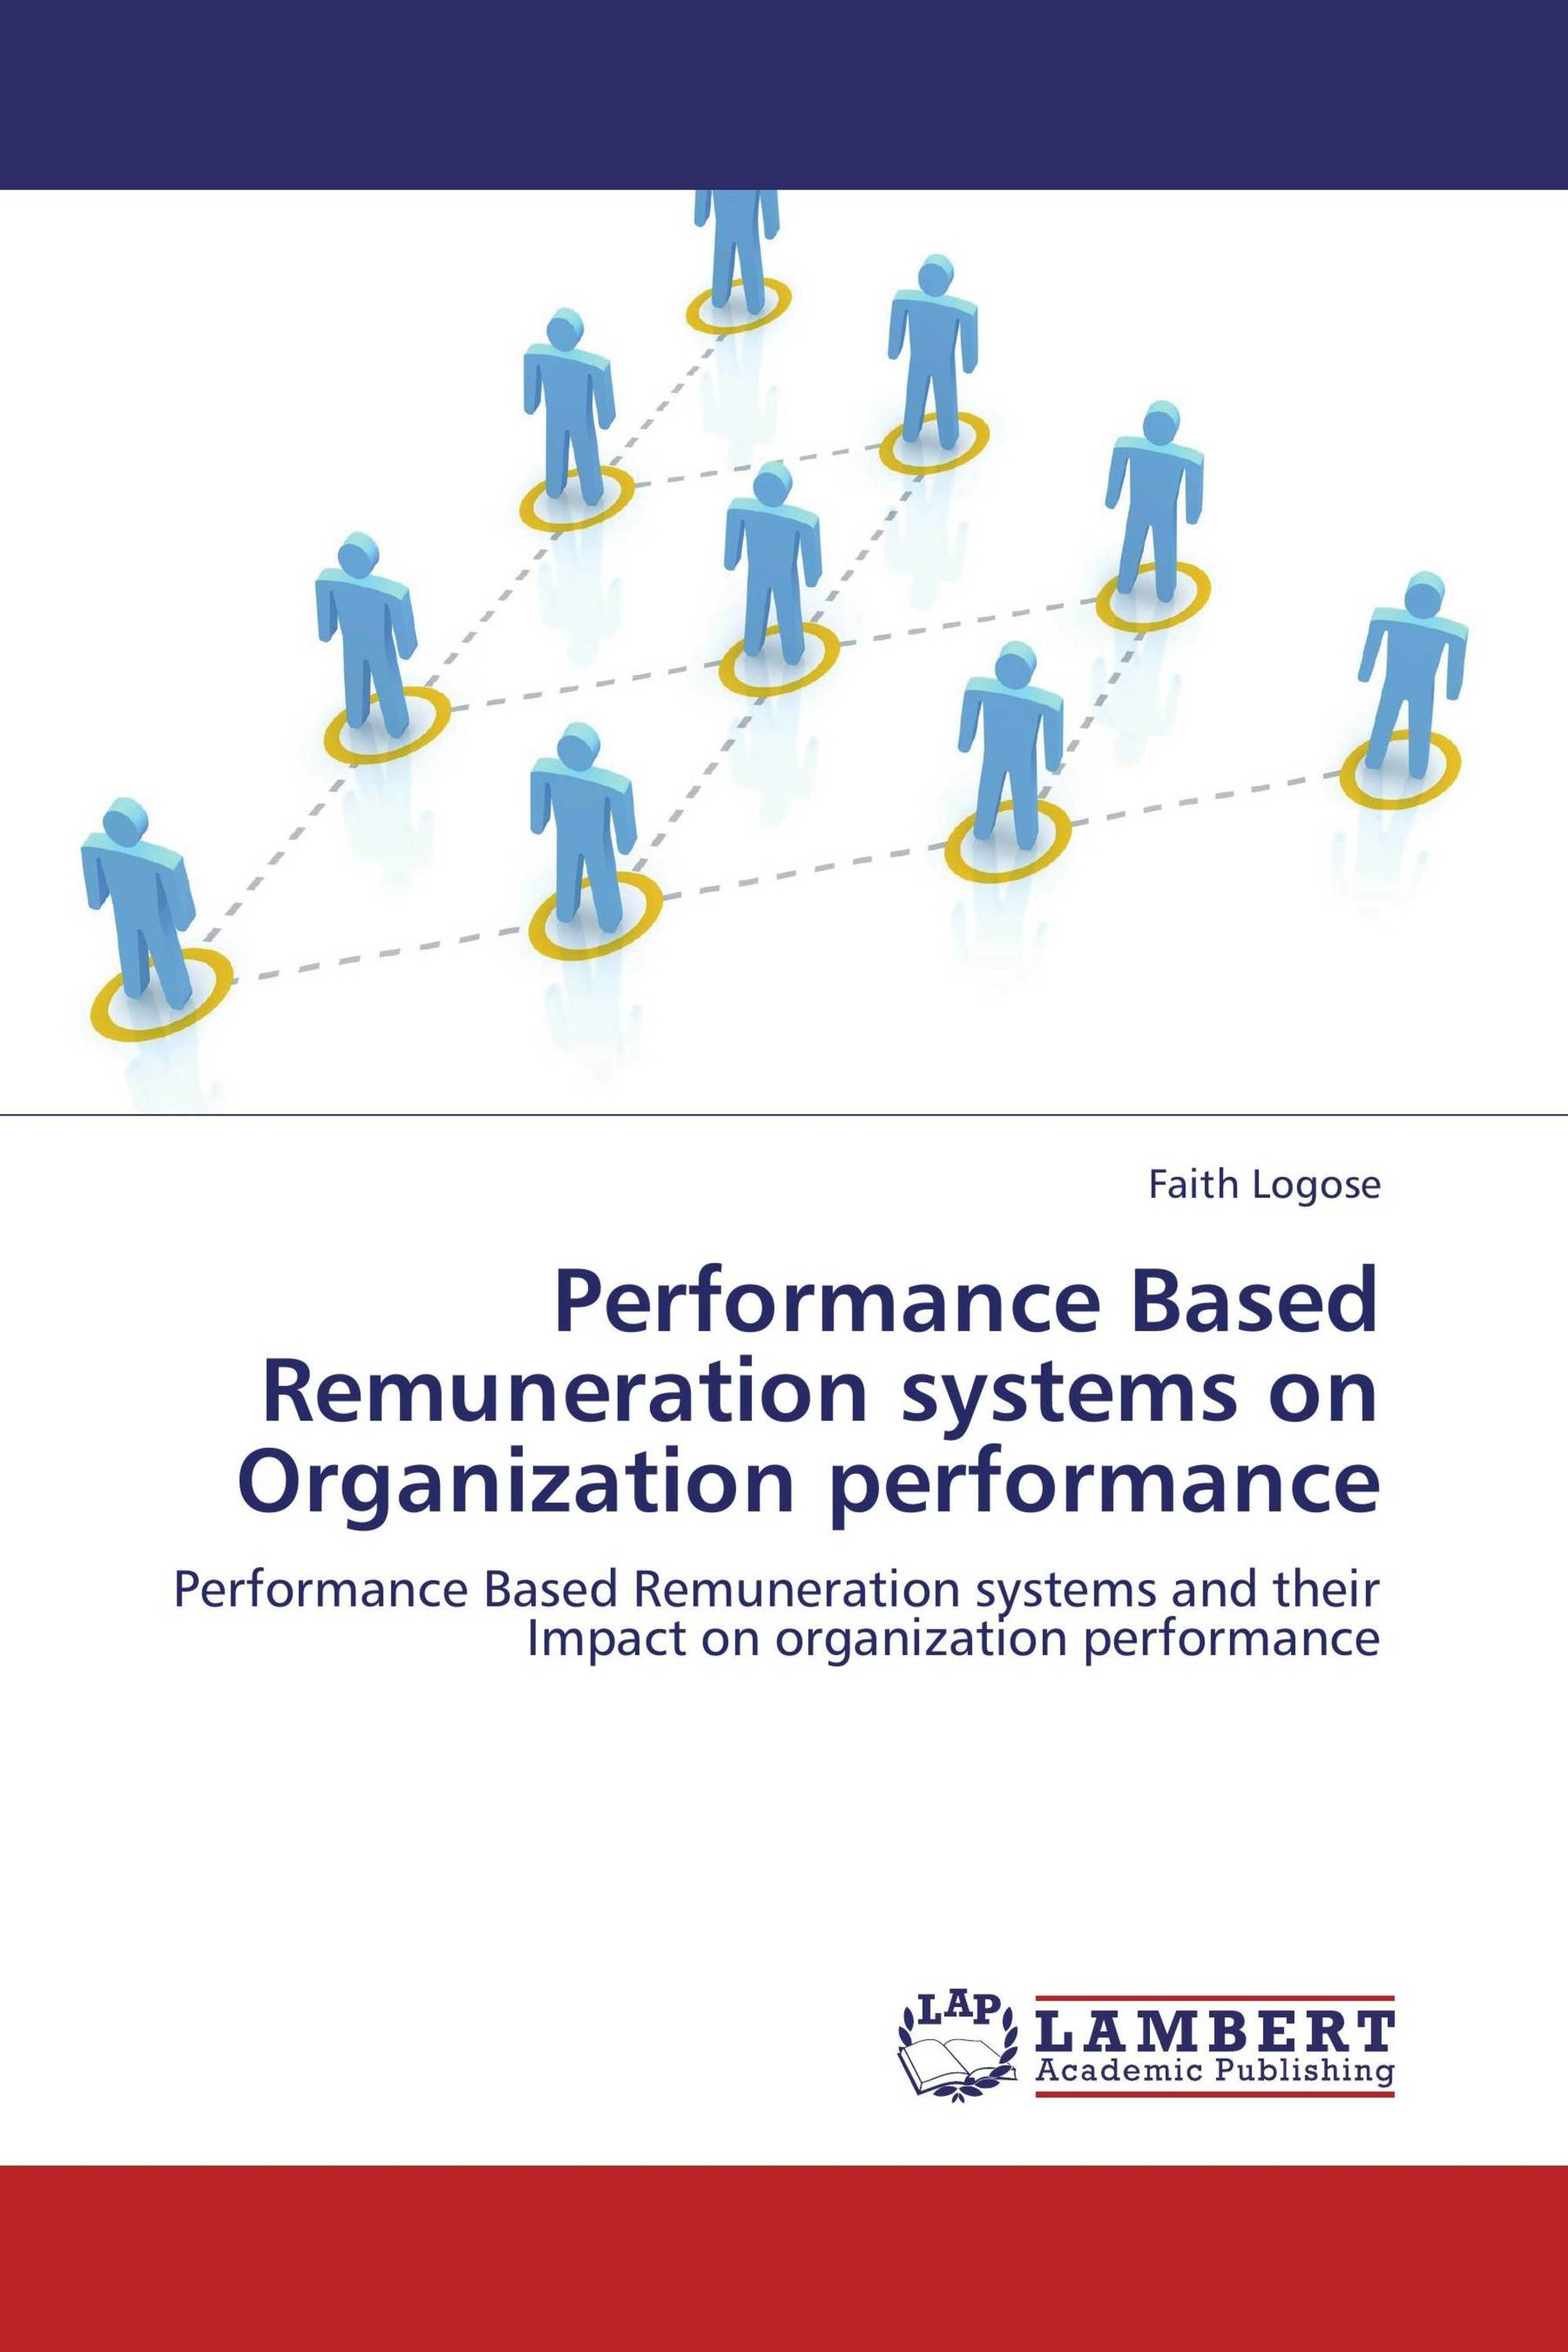 Phd dissertation on remuneration policy impacts on organizational performance